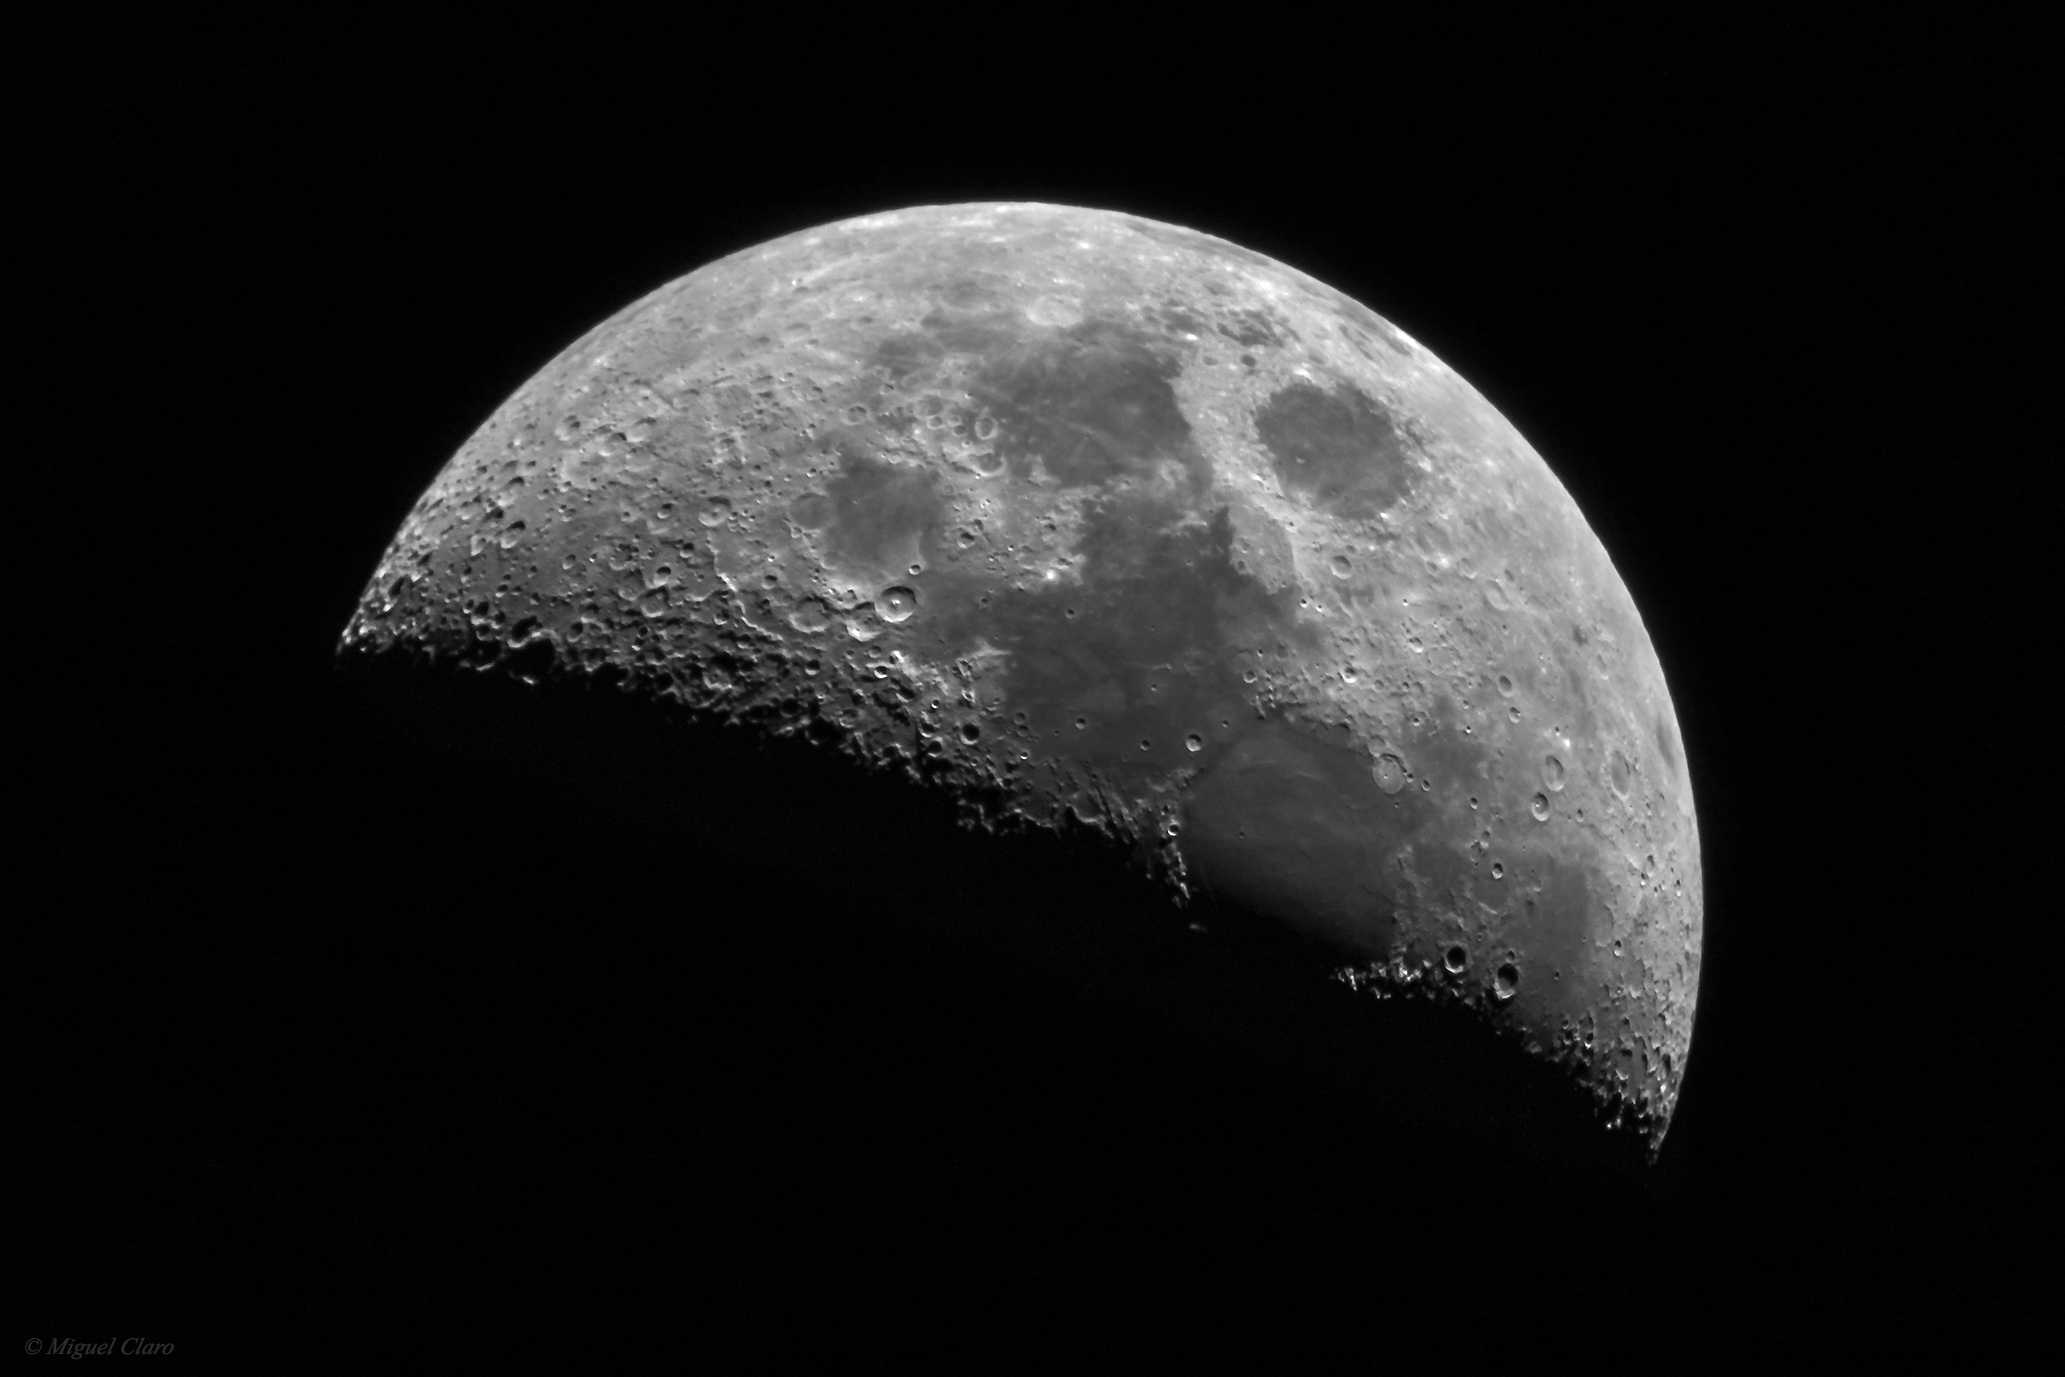 The Magnificent Moon: Amateur Astronomer Captures Stunning Photo of Lunar Surface